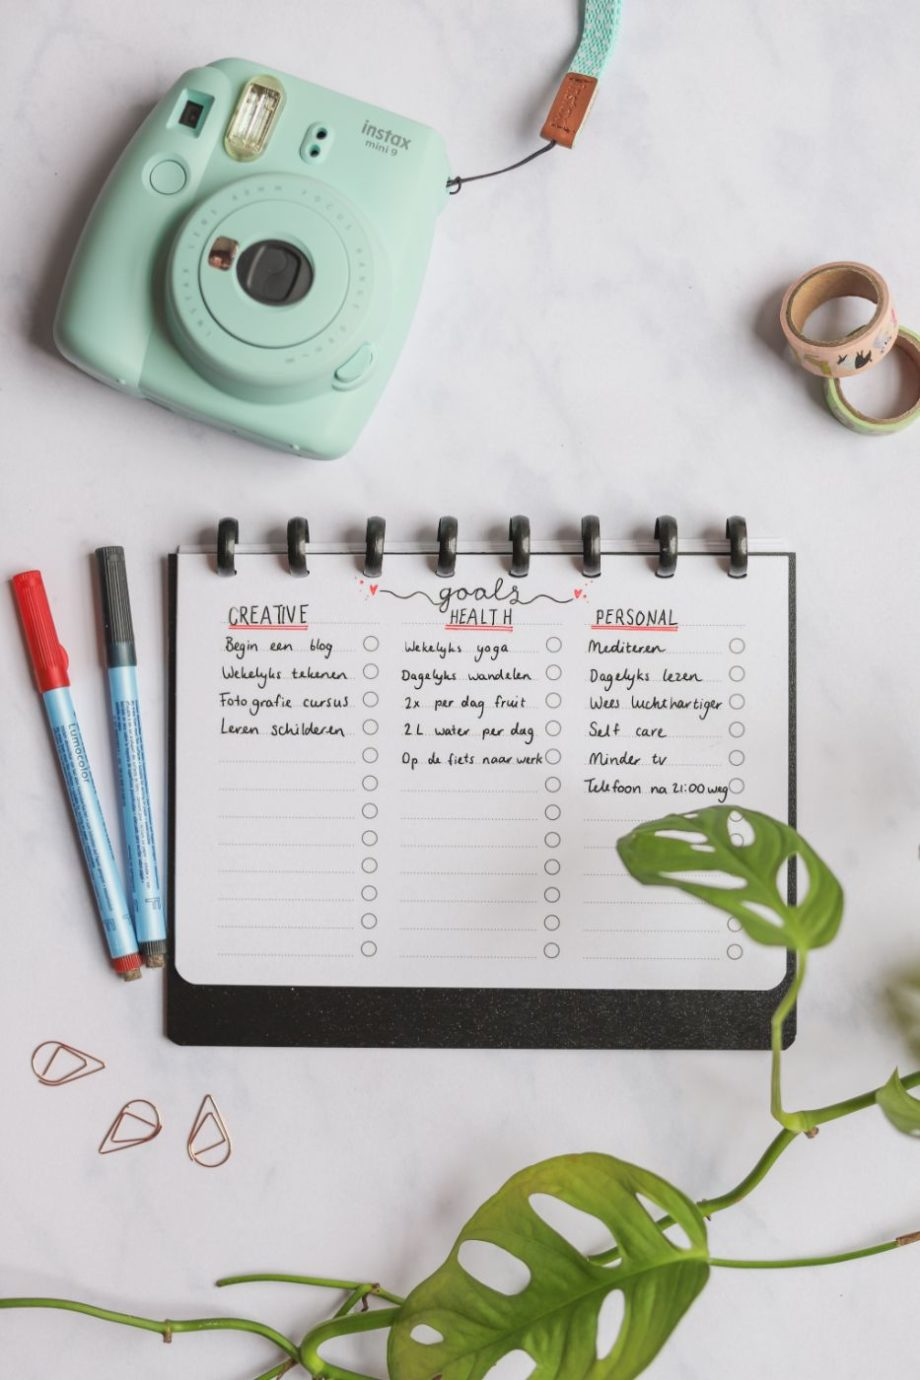 Horizontal erasable filled-in to-do list with black rings and black cover next to pens, camera and plant on marble background